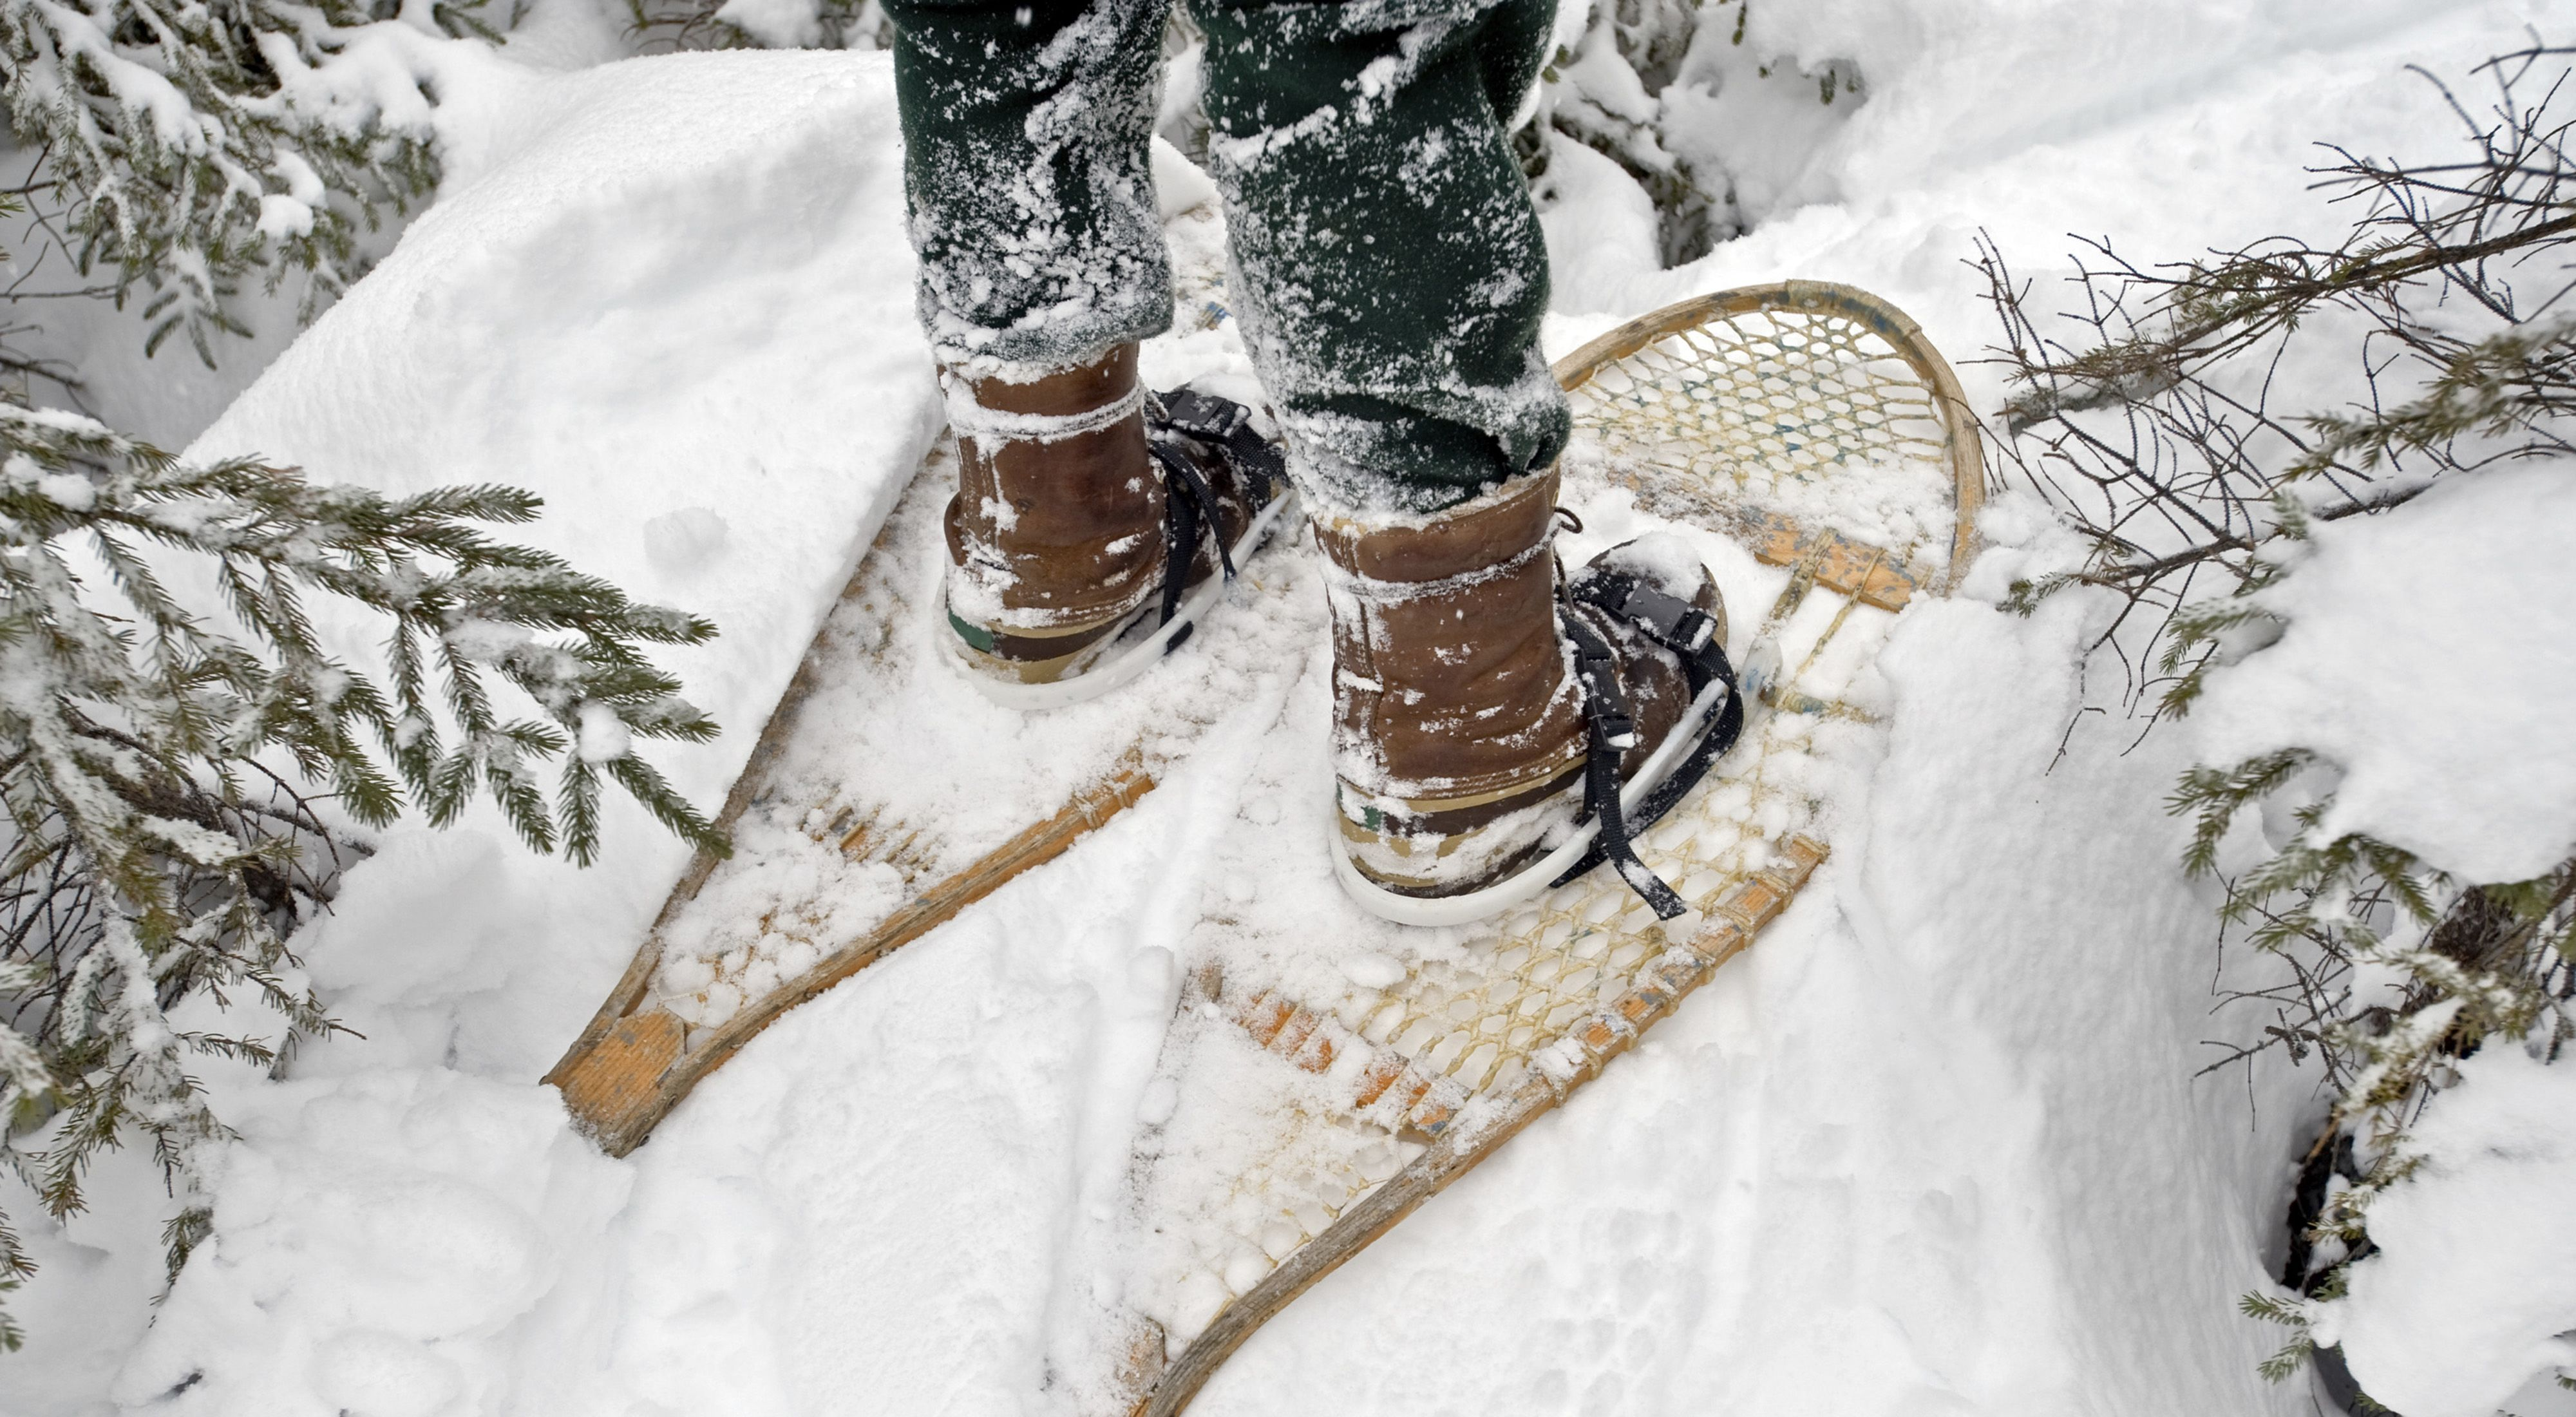 Close up view of feet in snow, wearing pair of sturdy boots and snowshoes.